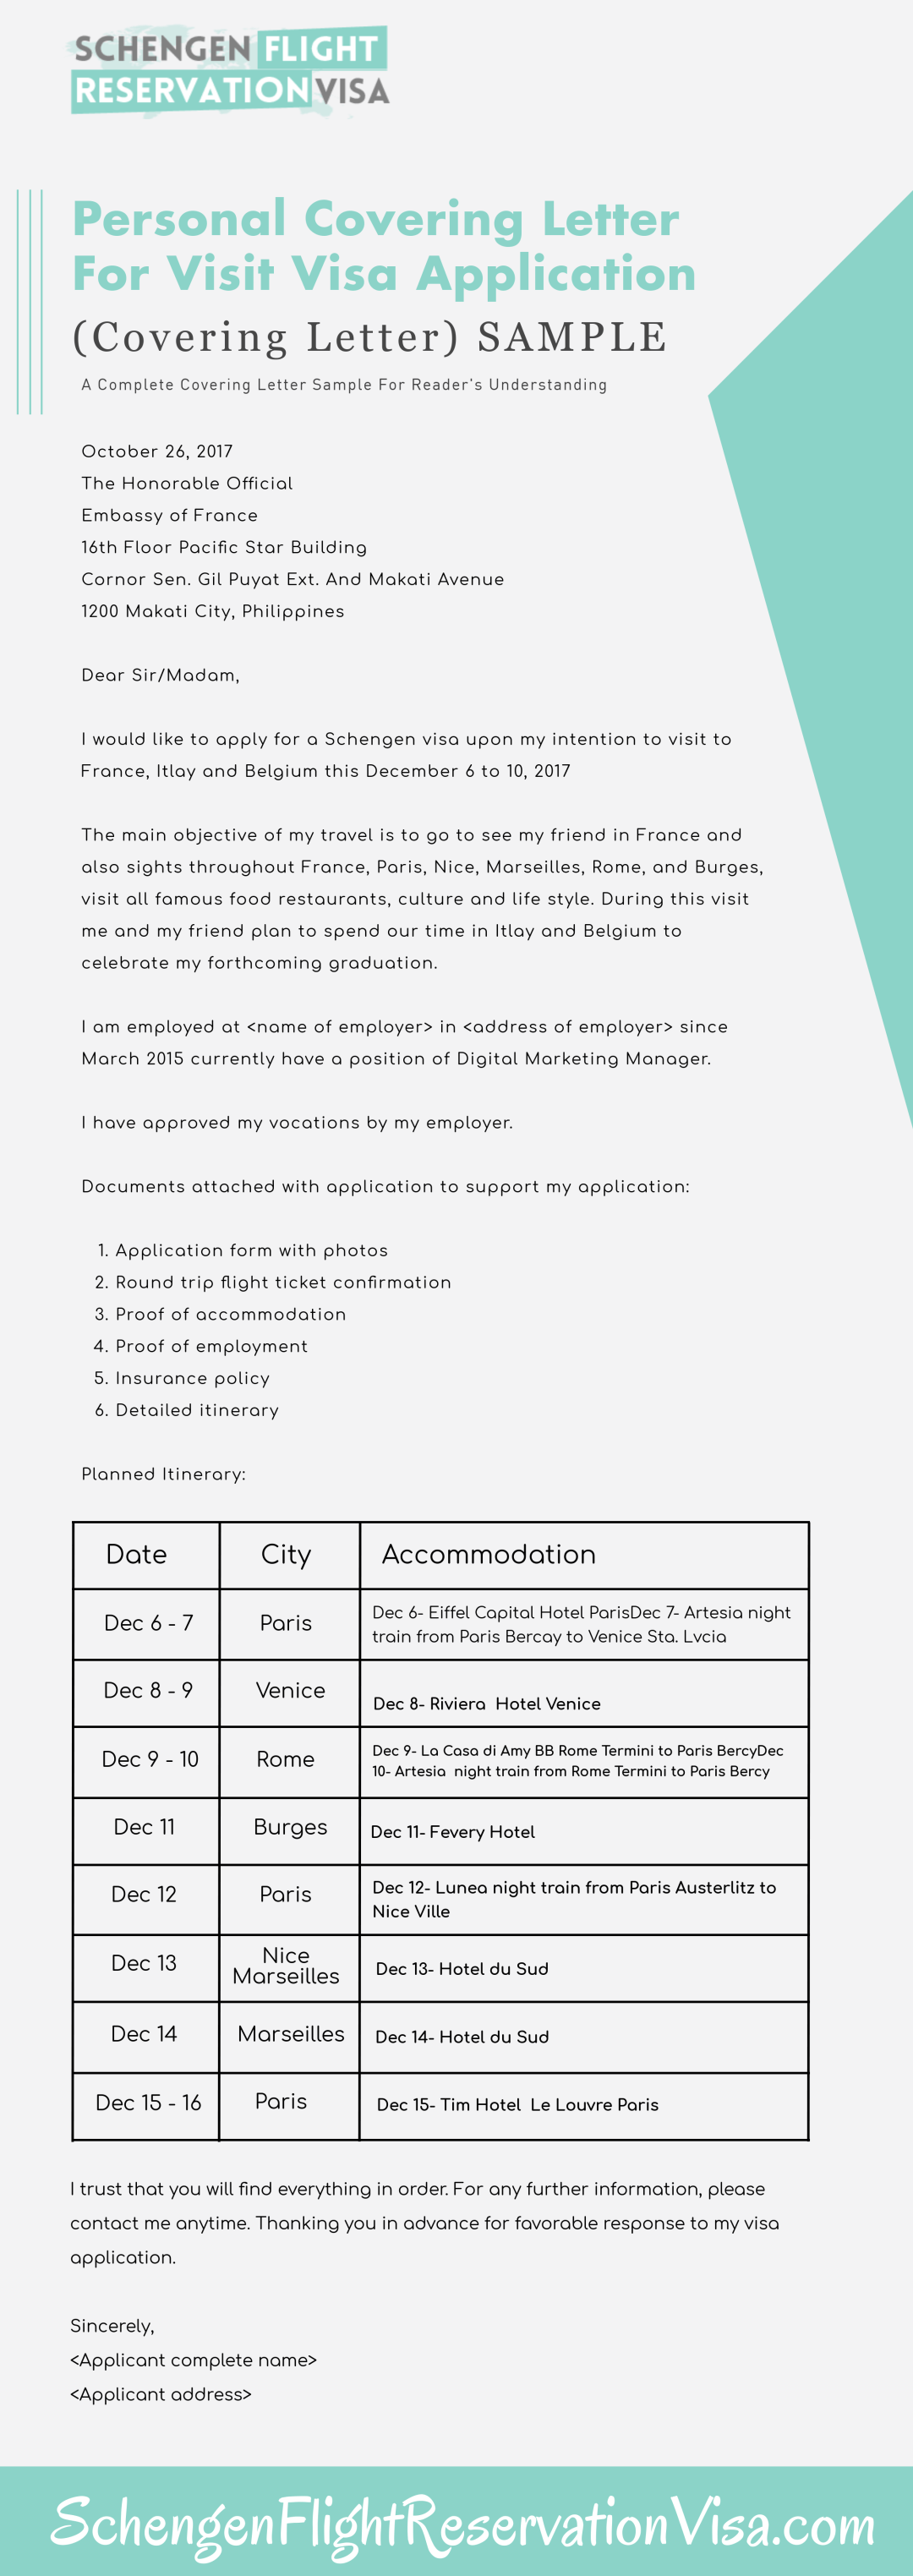 Personal covering letter guide and samples for visa application process personal covering letter for visit visa application thecheapjerseys Gallery